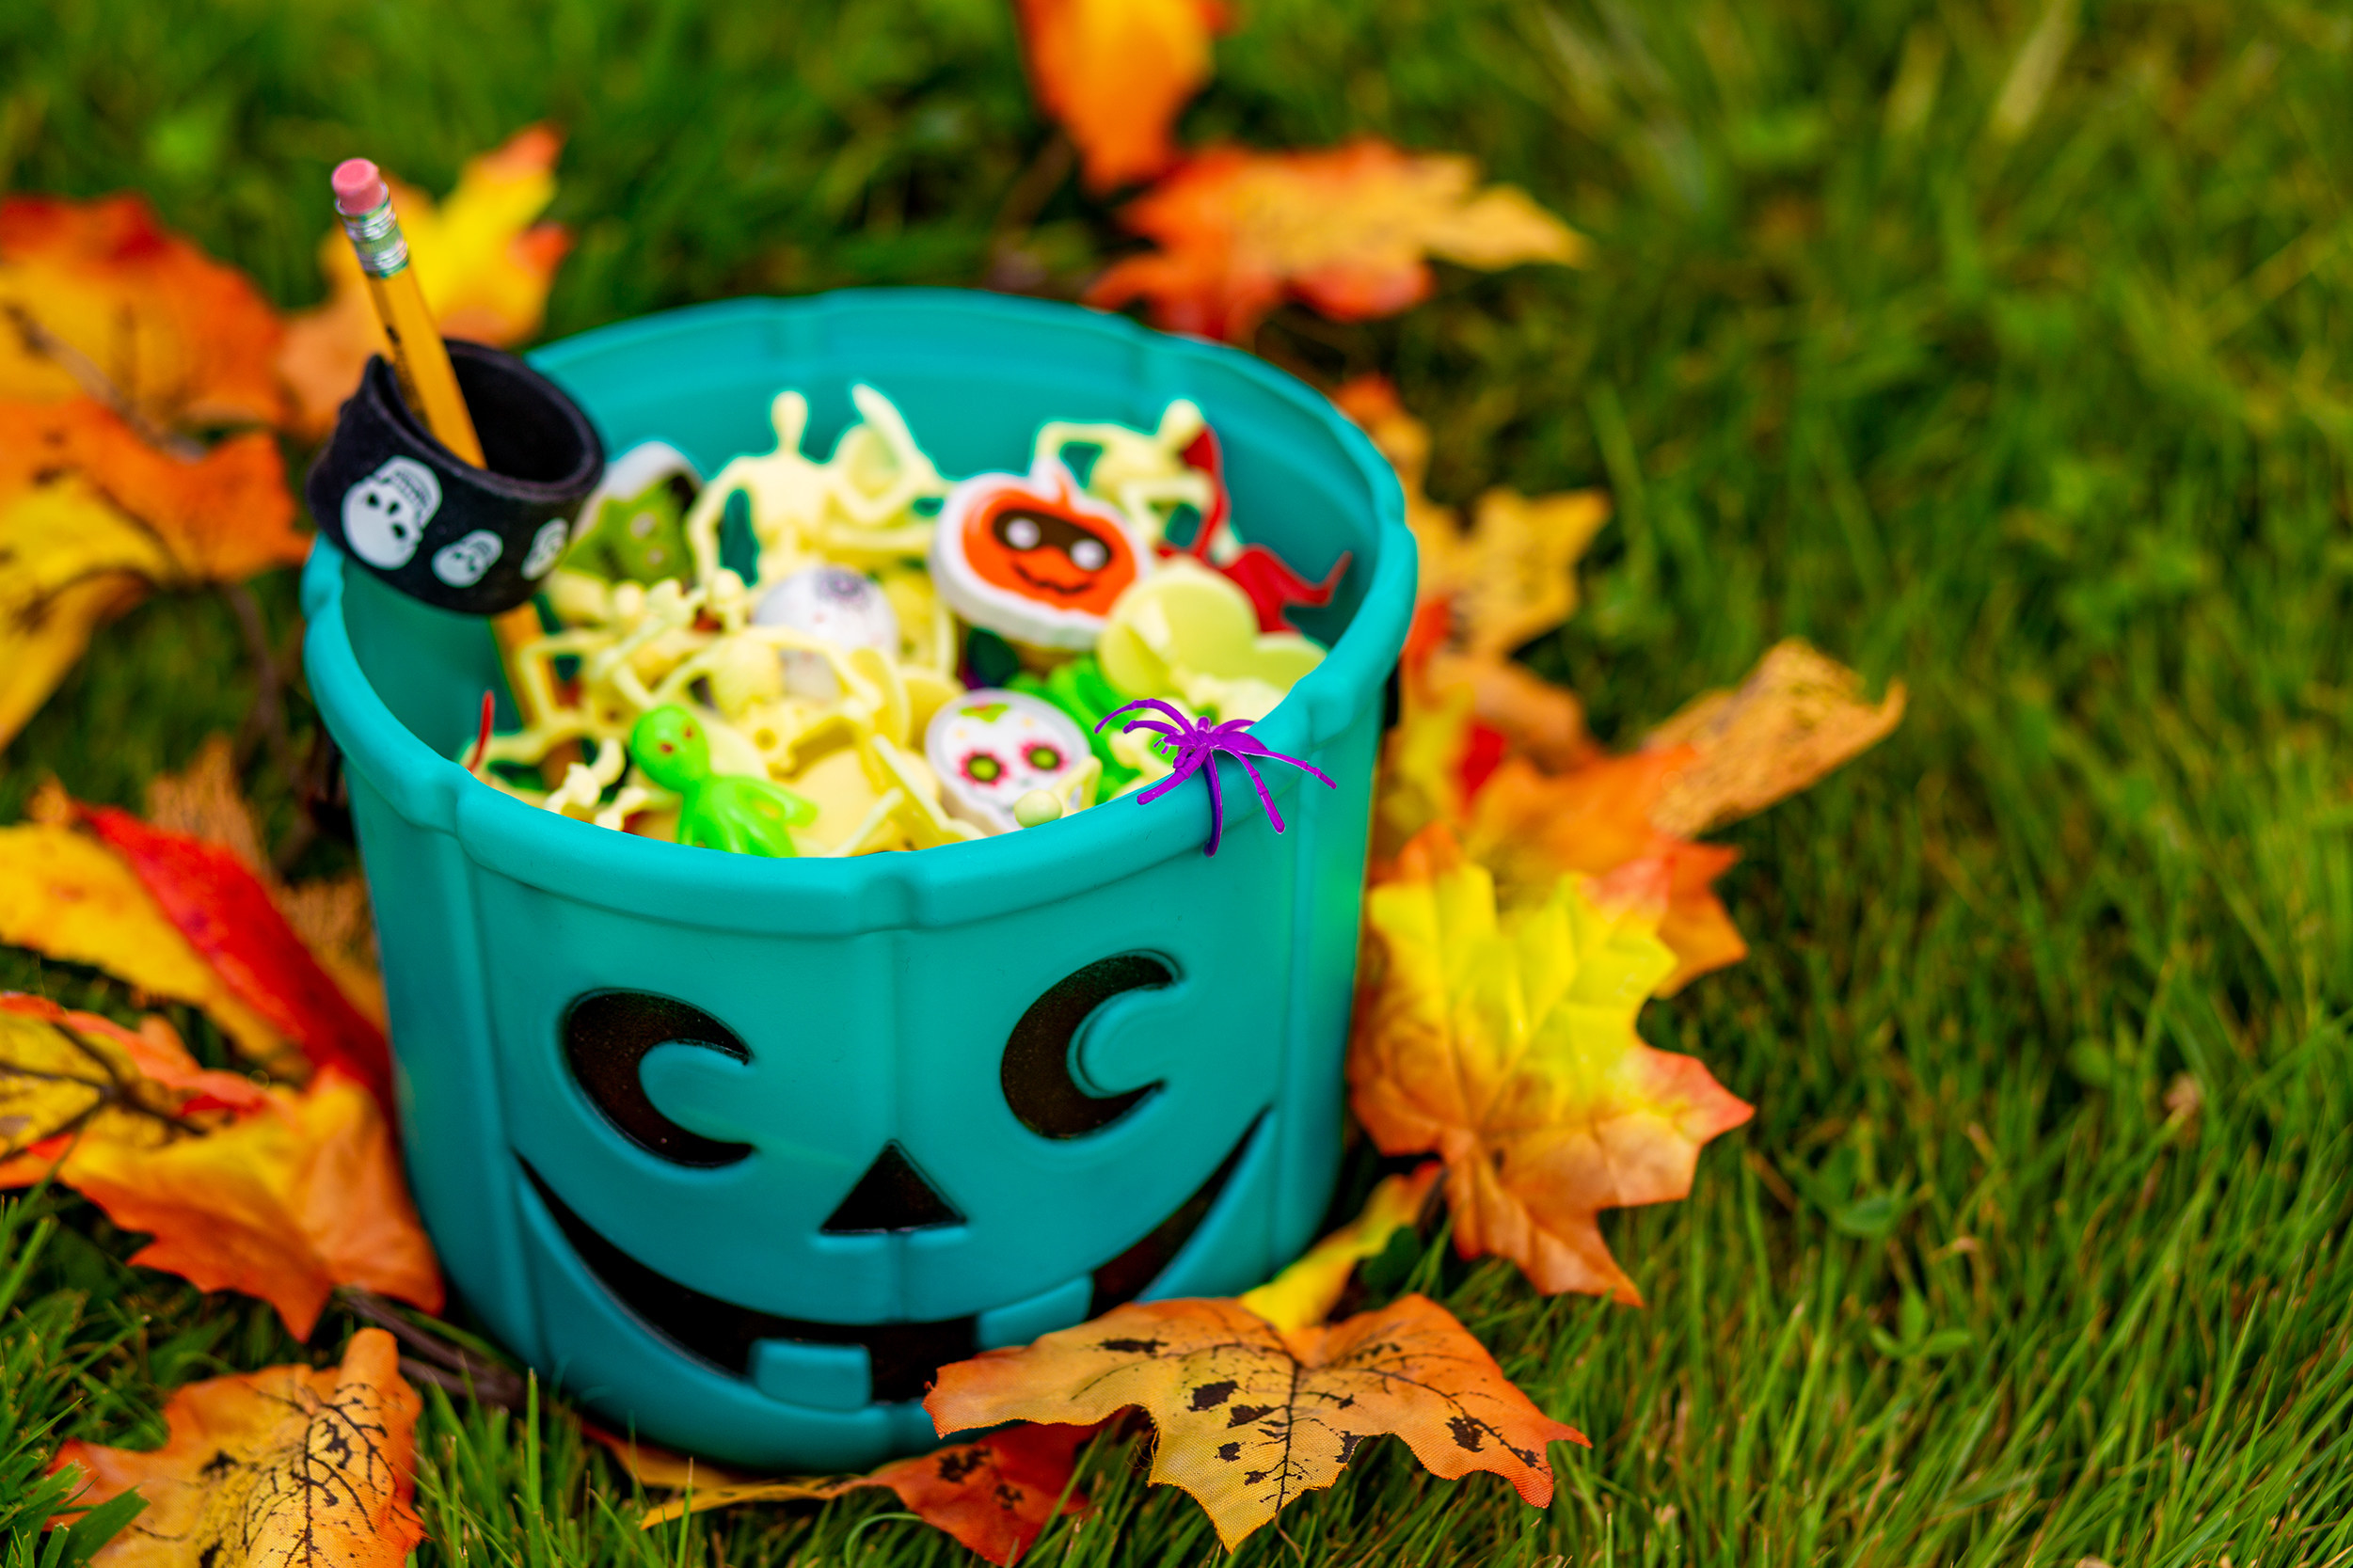 A candy basket filled with Halloween knickknacks.